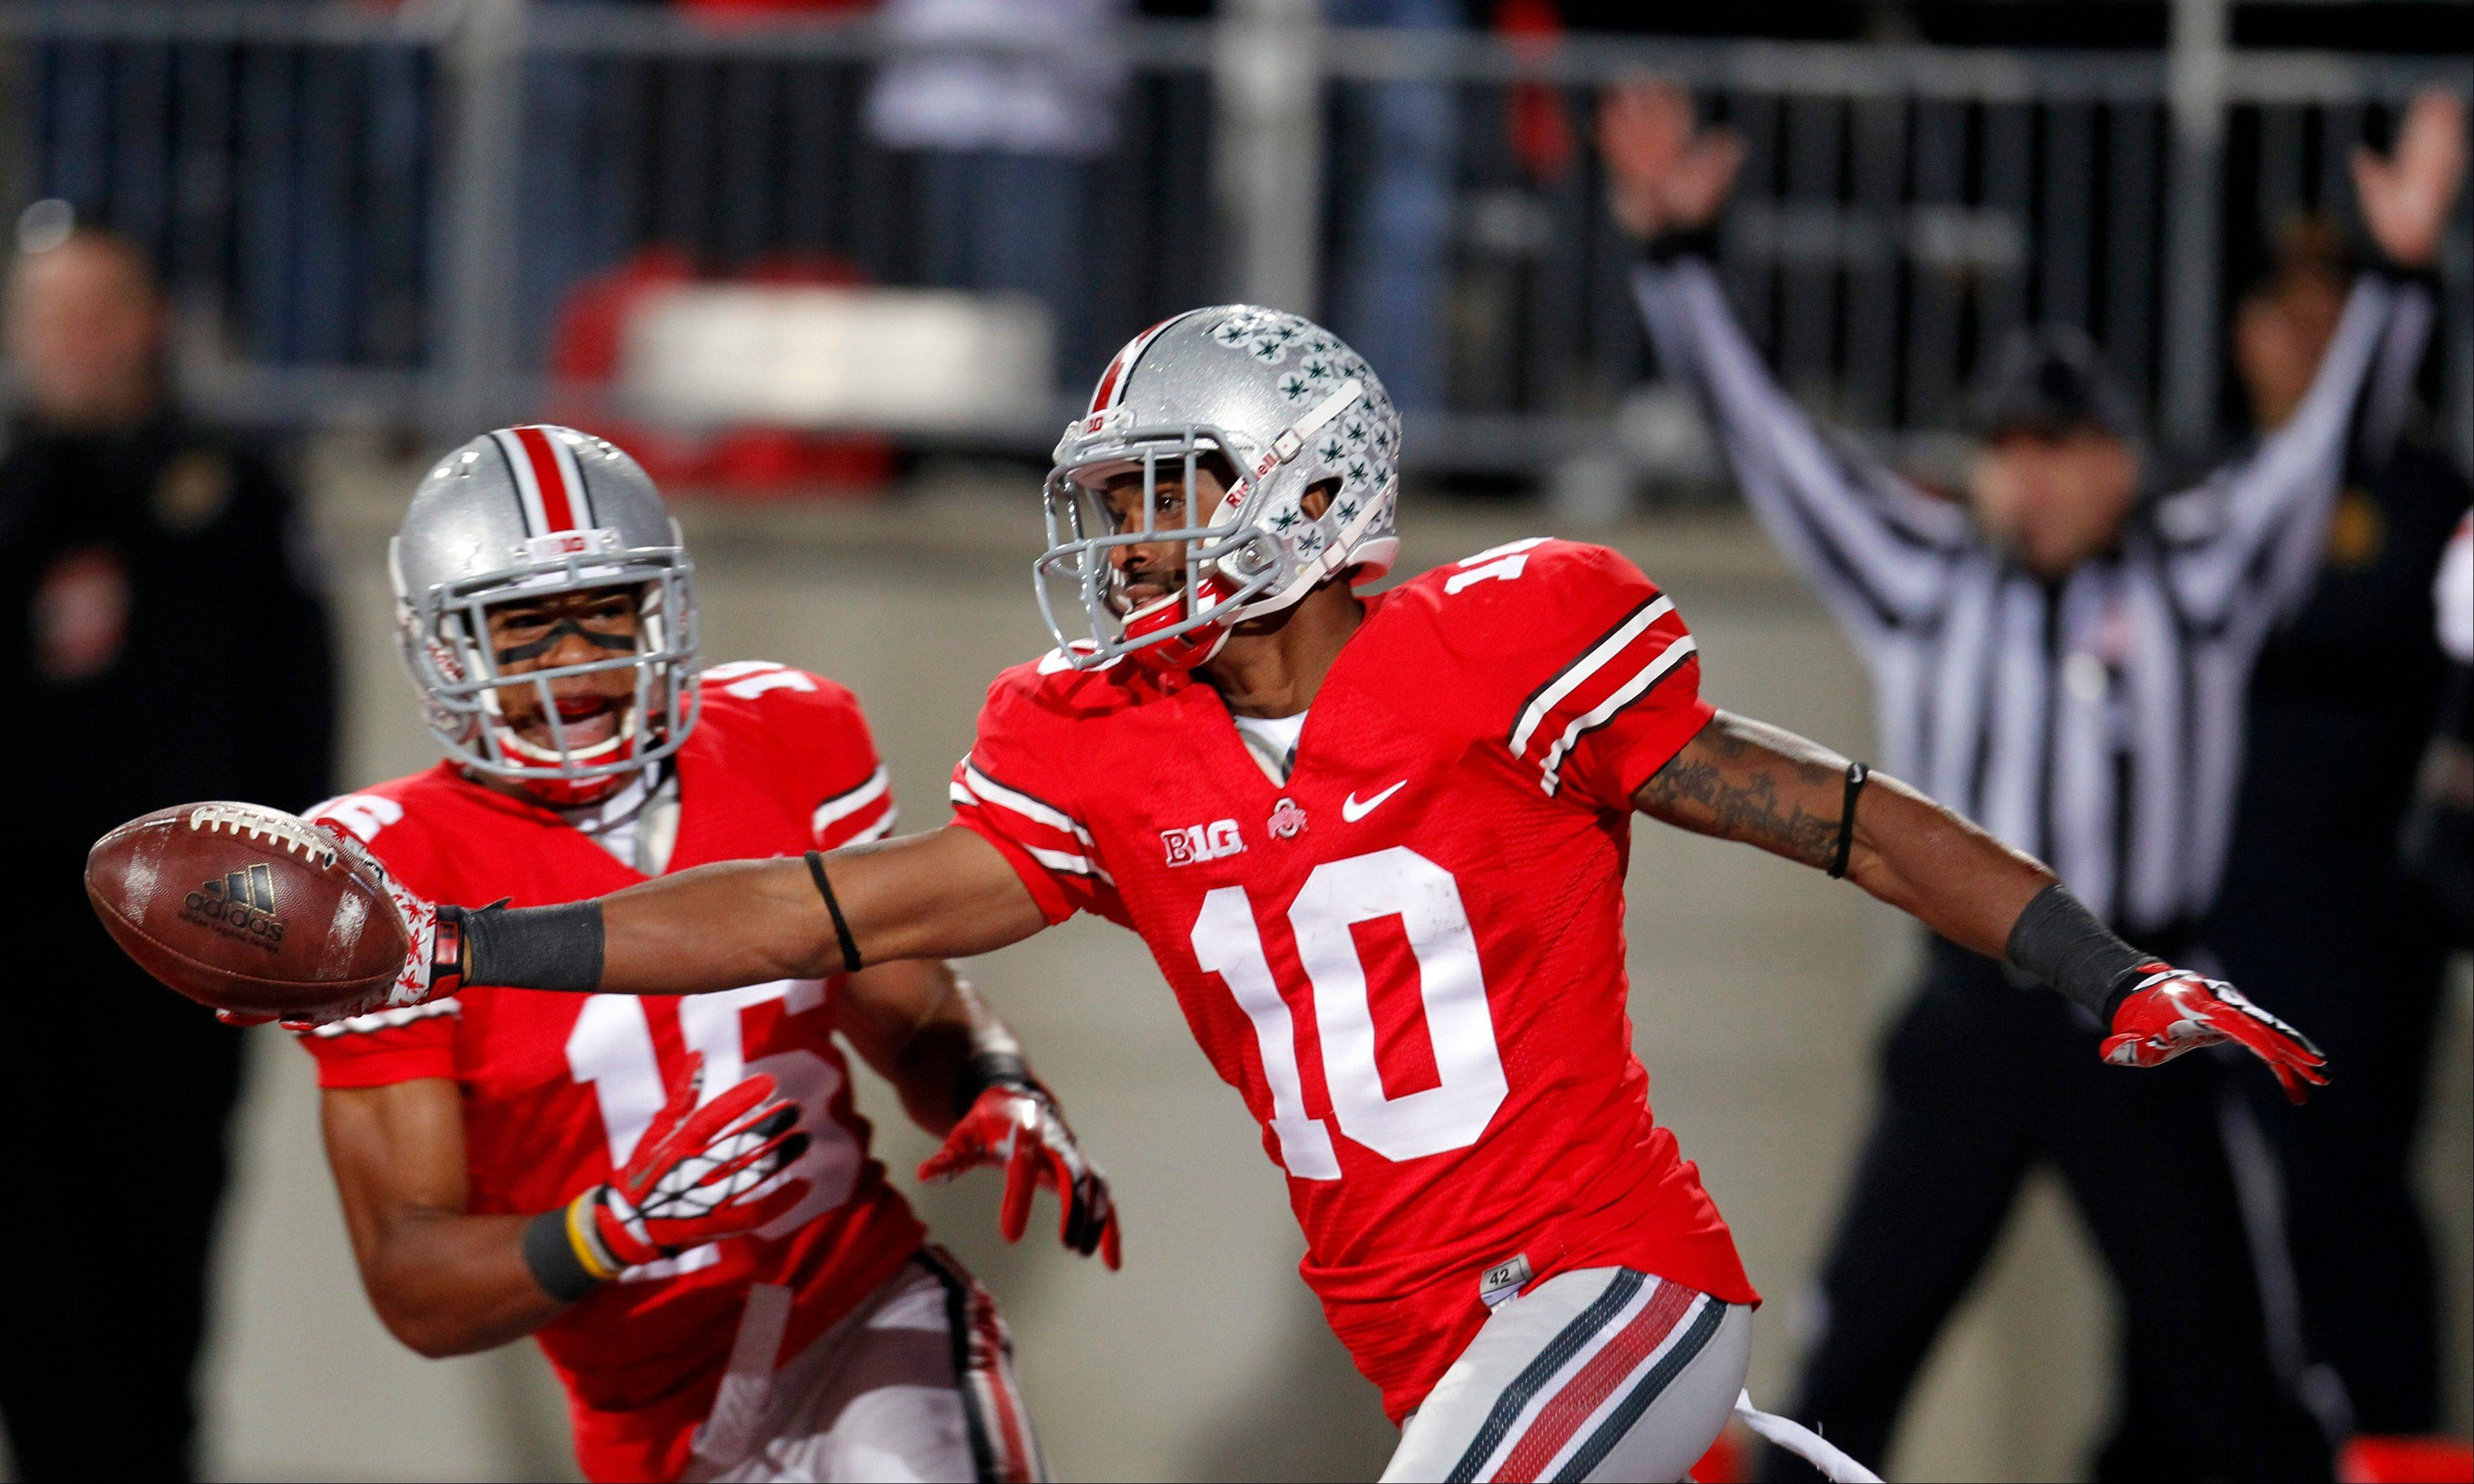 Ohio State wide receiver Corey Brown (10) celebrates after returning a punt 76 yards for a touchdown against Nebraska Saturday in Columbus, Ohio.